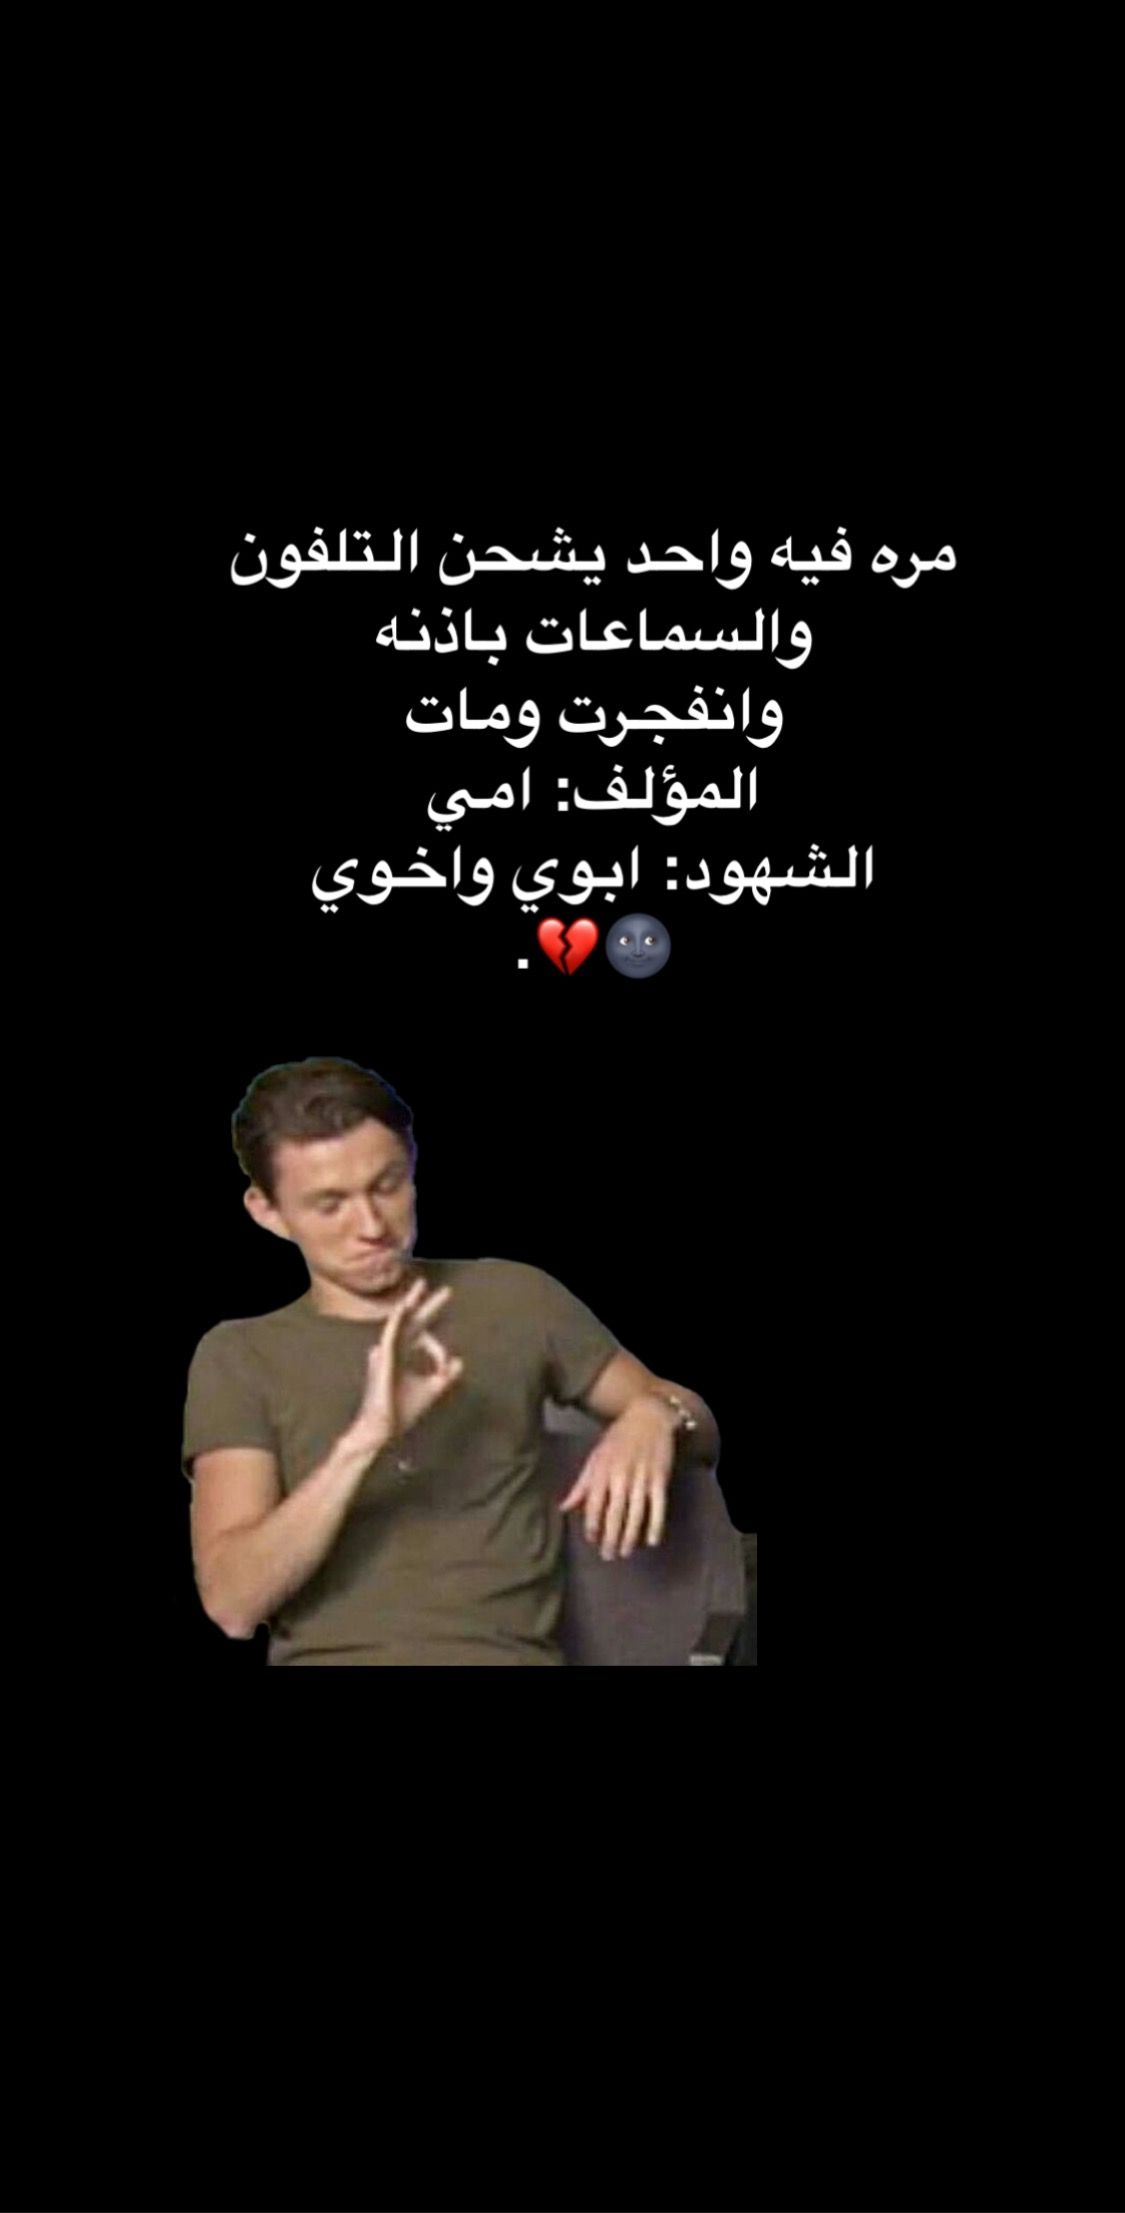 Pin By Imane Siali On ابتسموا ي جميلين Funny Quotes For Instagram Funny Quotes Jokes Quotes